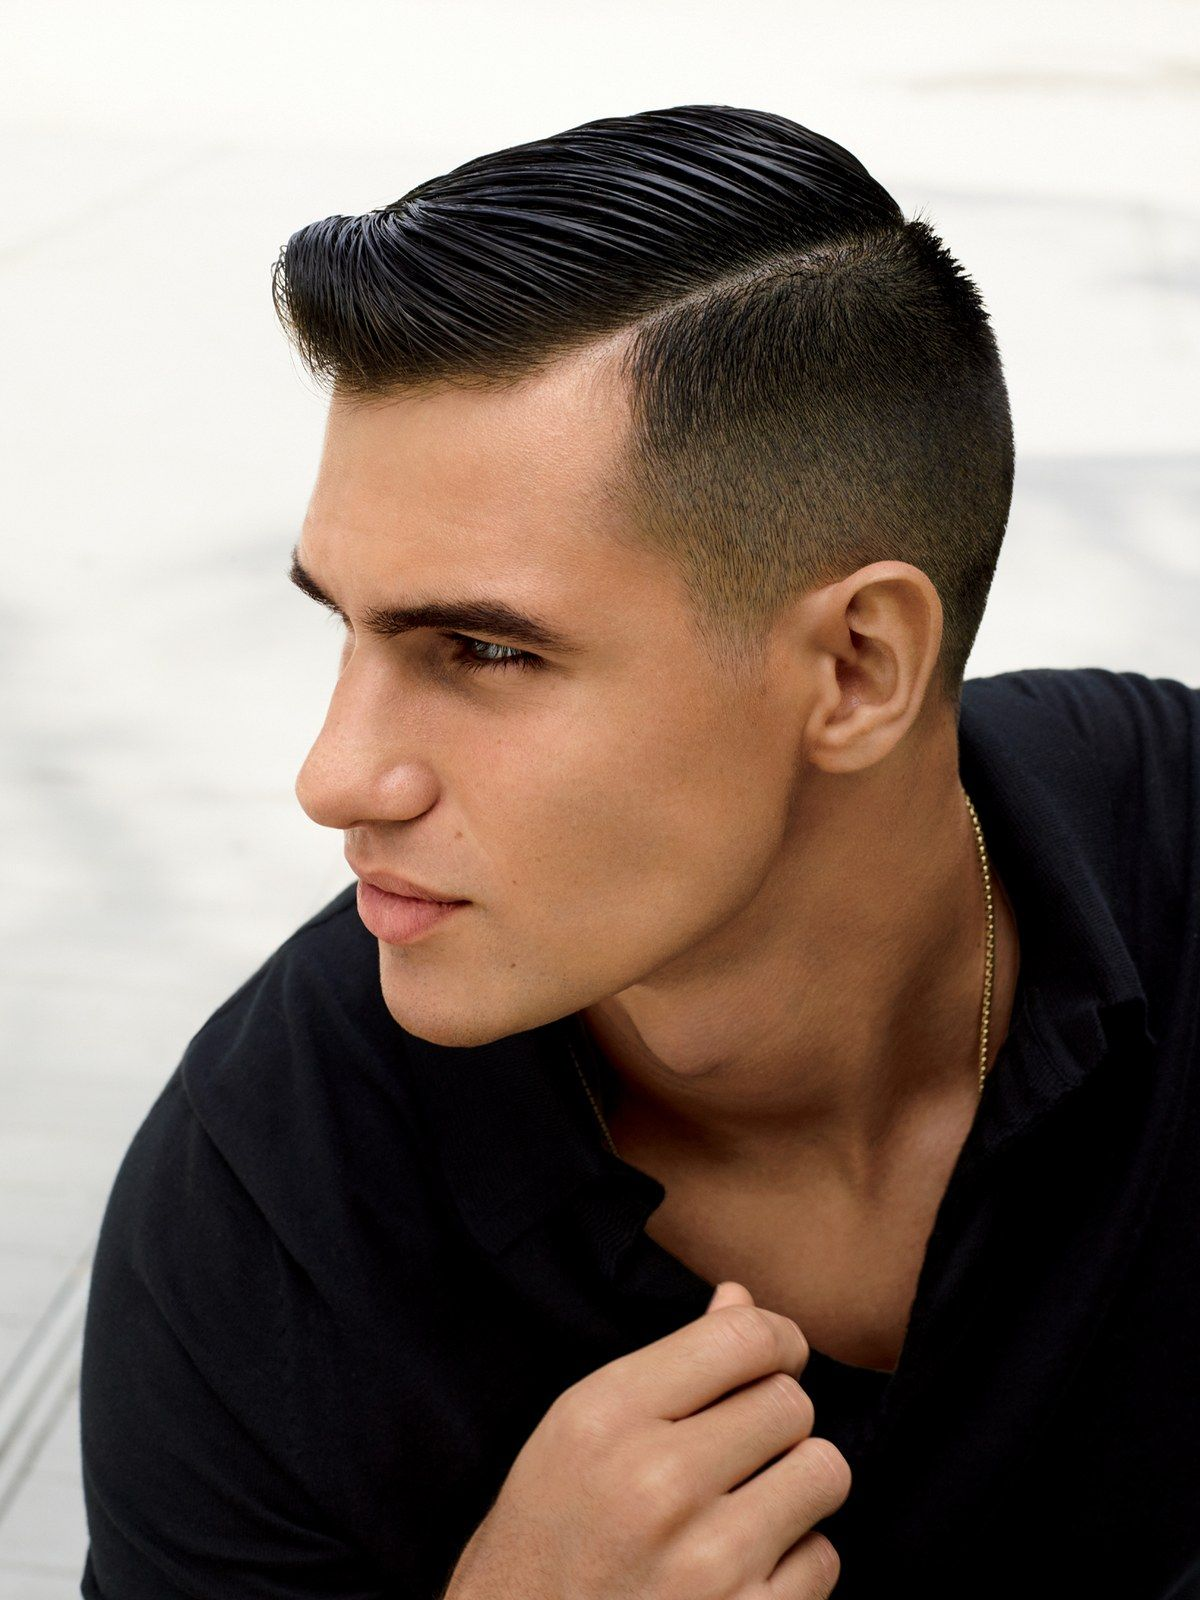 The Summer Haircut That Every Man Should Try | Haircuts for men, Summer haircuts, Stylish haircuts